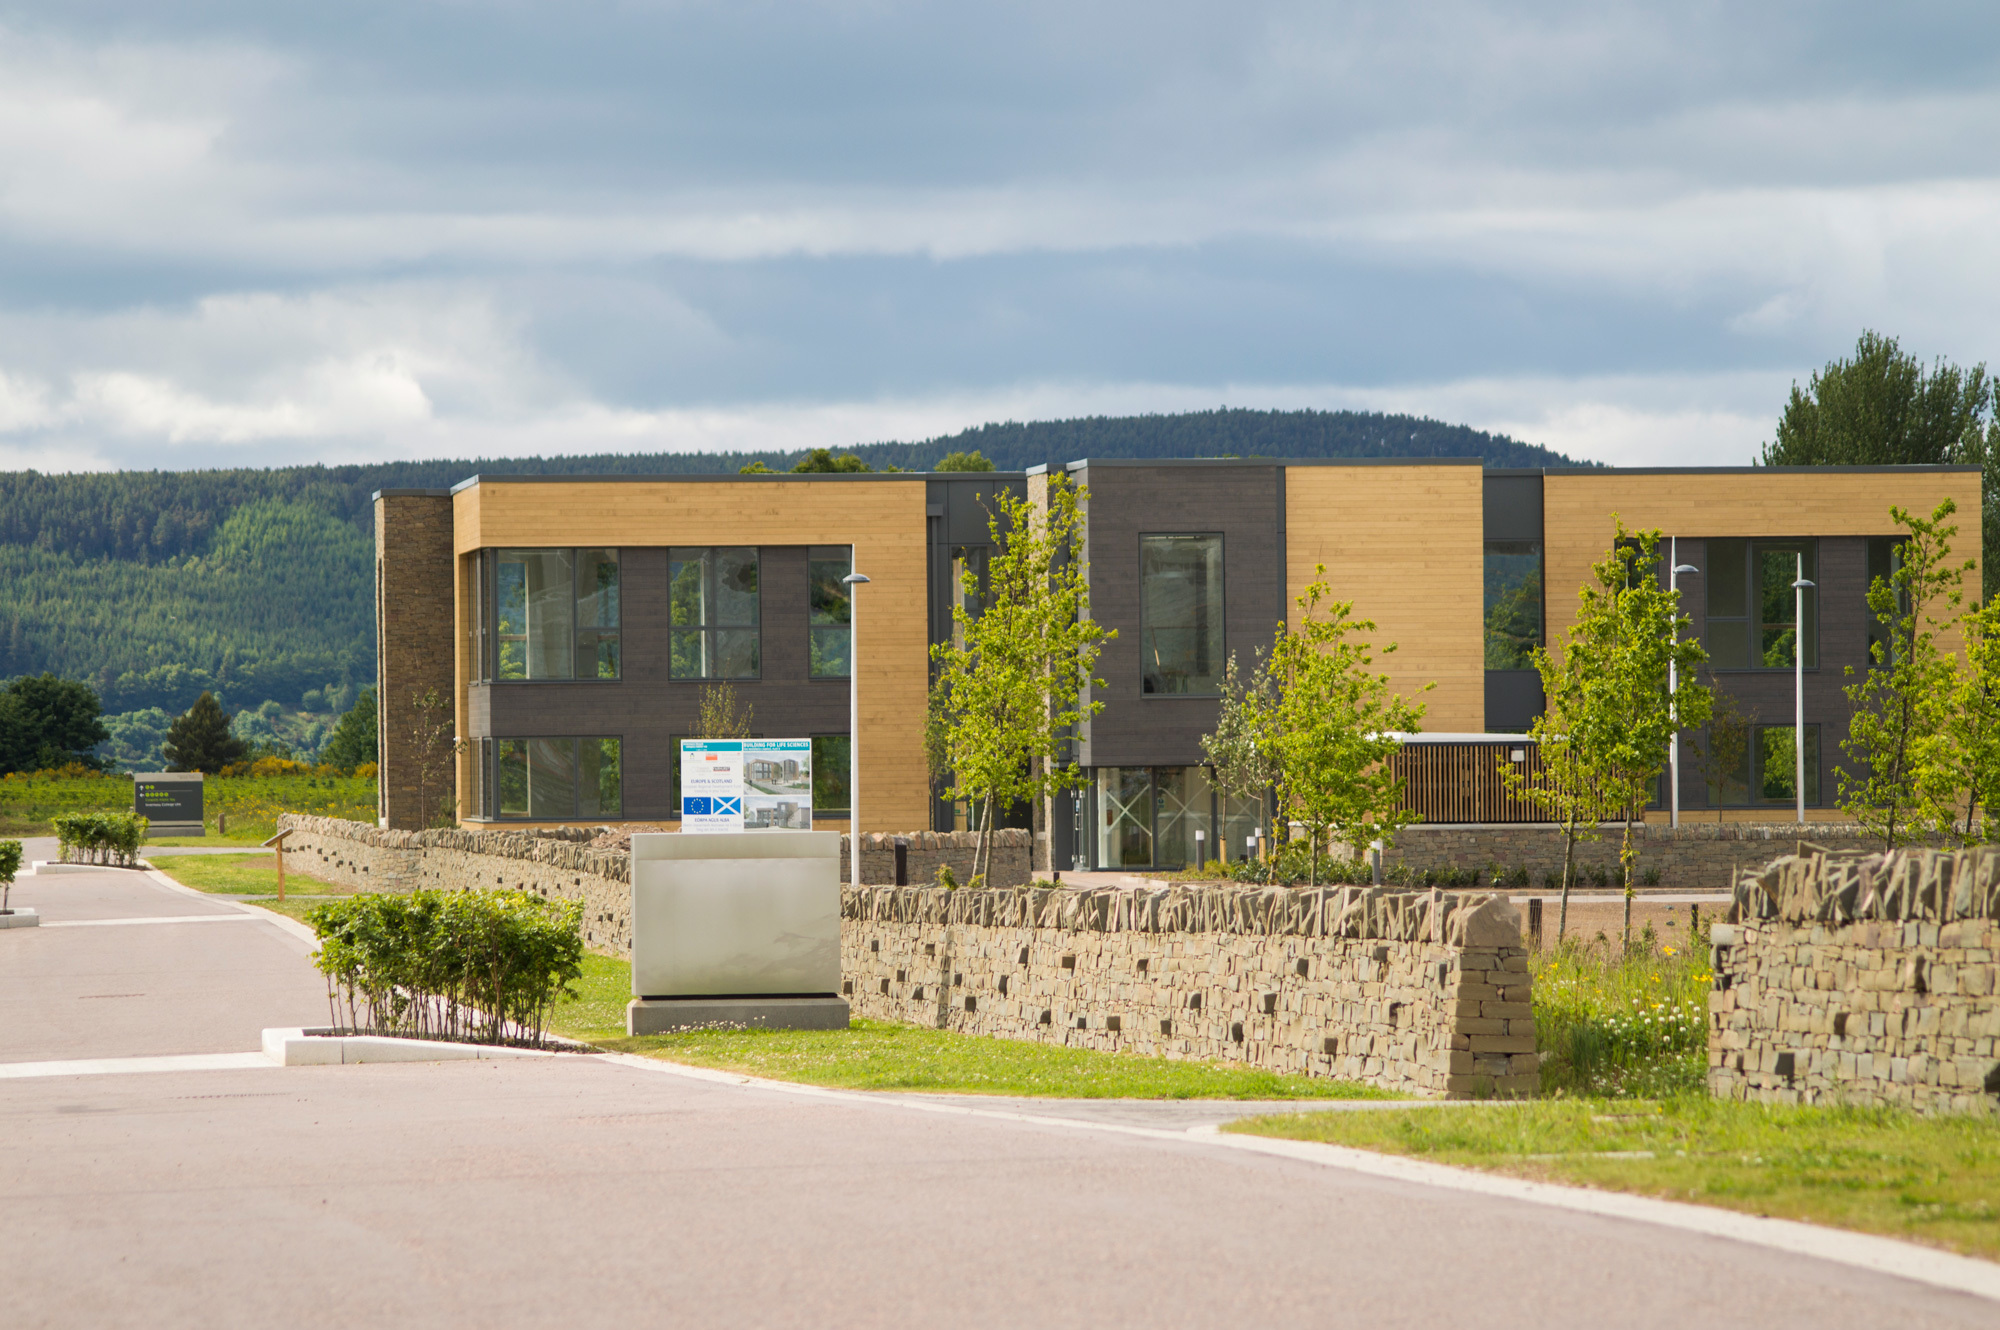 Another building will go up beside the existing life sciences building at Inverness Campus